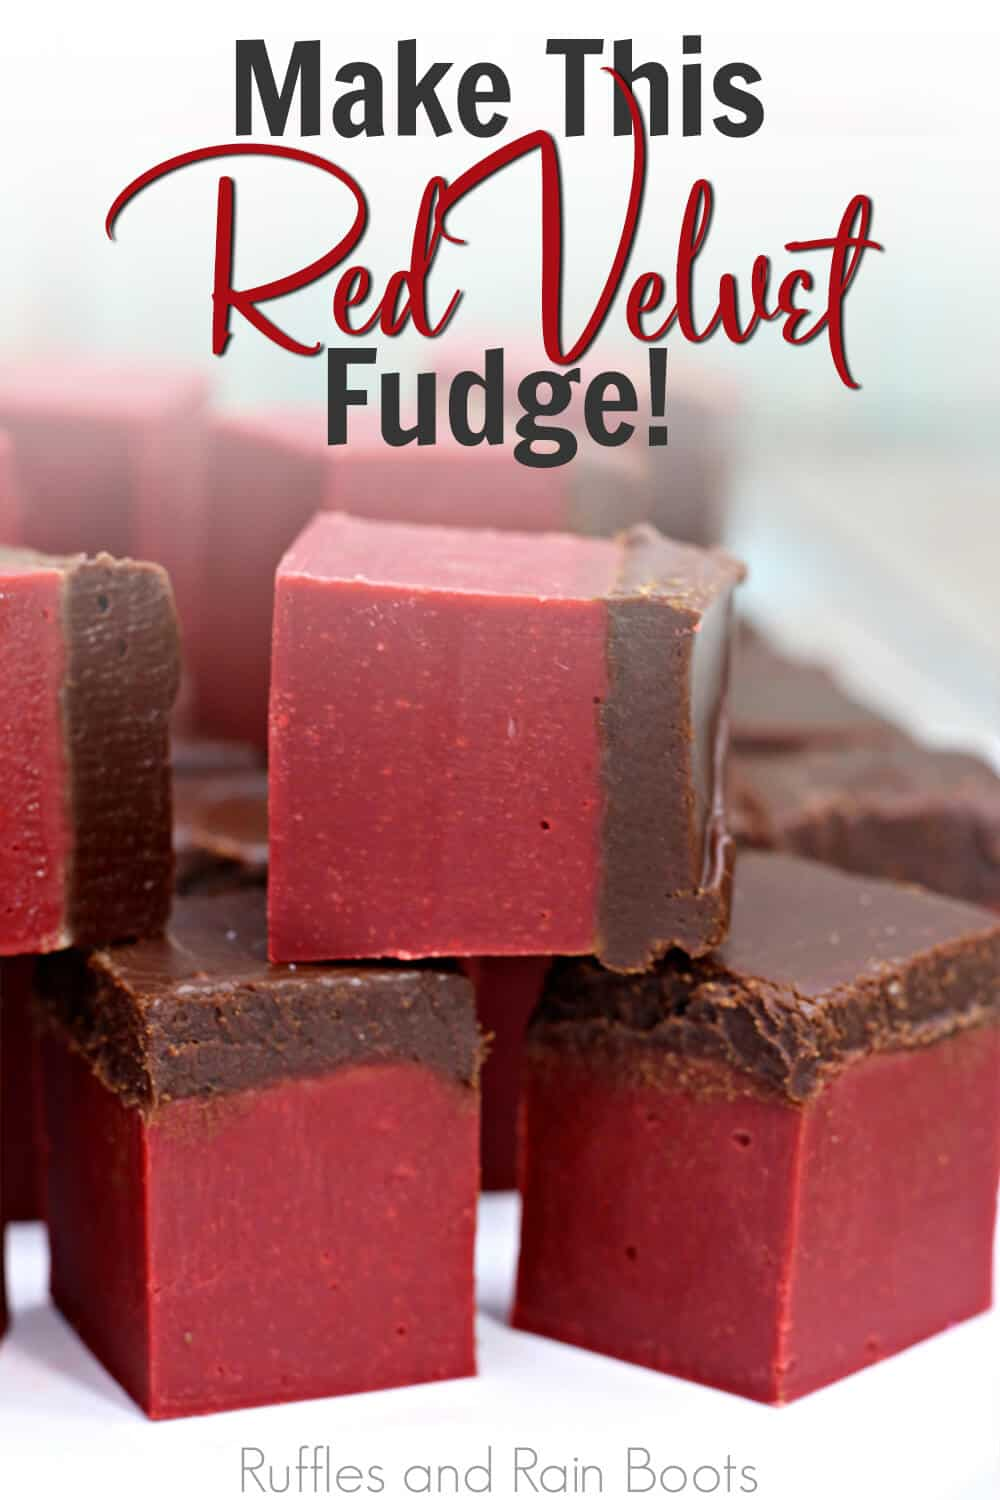 closeup of creamy red fudge with chocolate topping with text which reads make this red velvet fudge